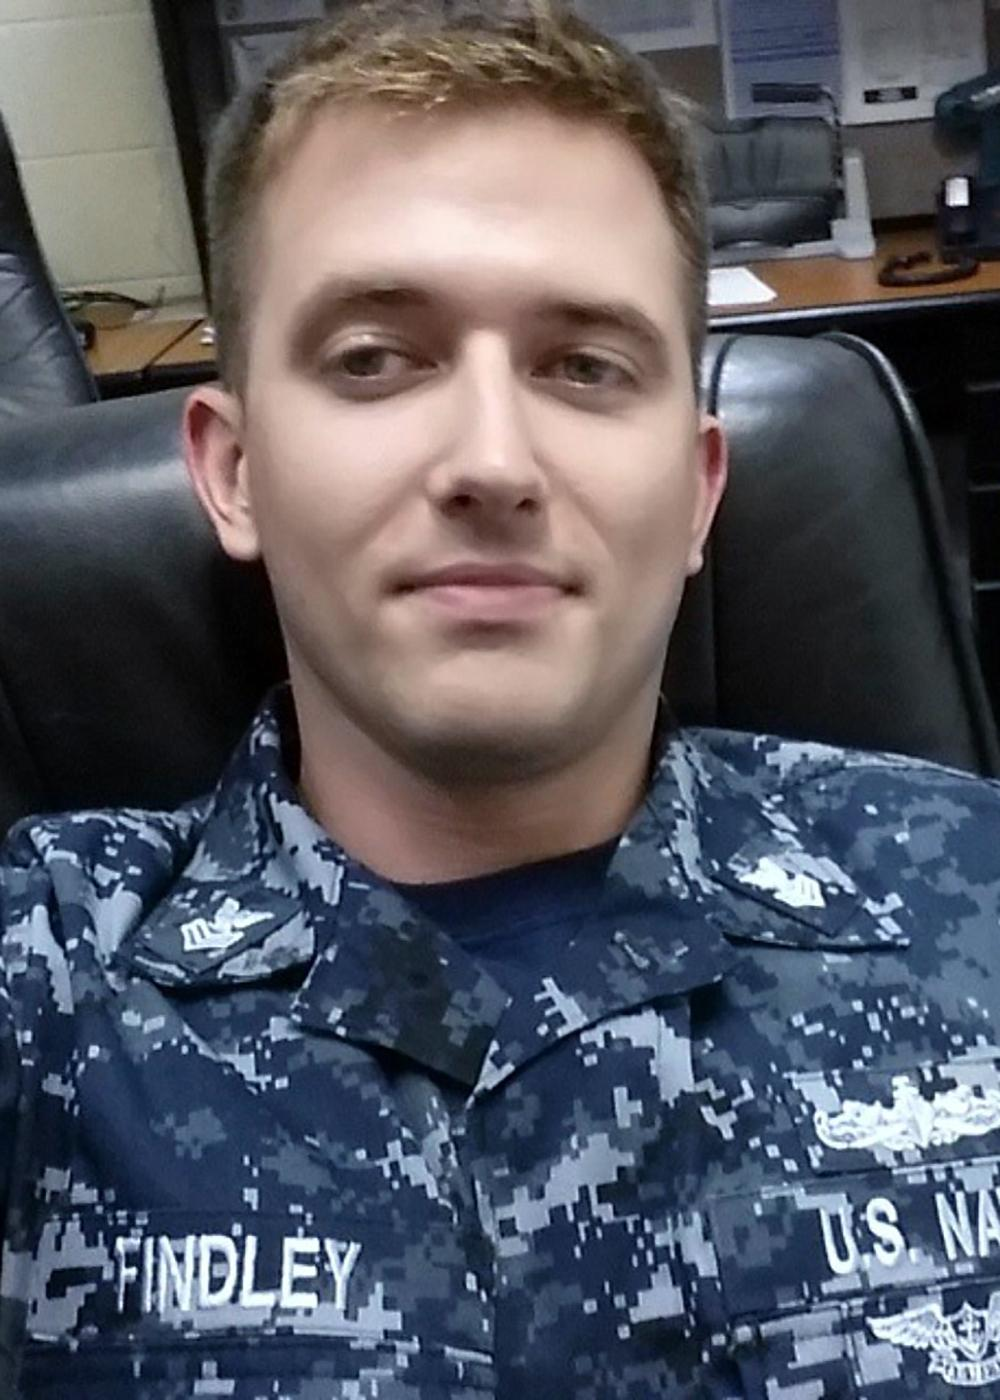 .S. Navy file photo of Electronics Technician 1st Class Charles Nathan Findley, 31, from Amazonia, Missouri, who was stationed aboard USS John S. McCain (DDG 56) when it collided with the Liberian-flagged merchant vessel Alnic MC, Aug. 21. Findley was identified as missing on Aug. 24. Navy and Marine Corps divers will continue search and recovery efforts inside flooded compartments in the ship for the missing Sailors.  (U.S. Navy photo/Released)